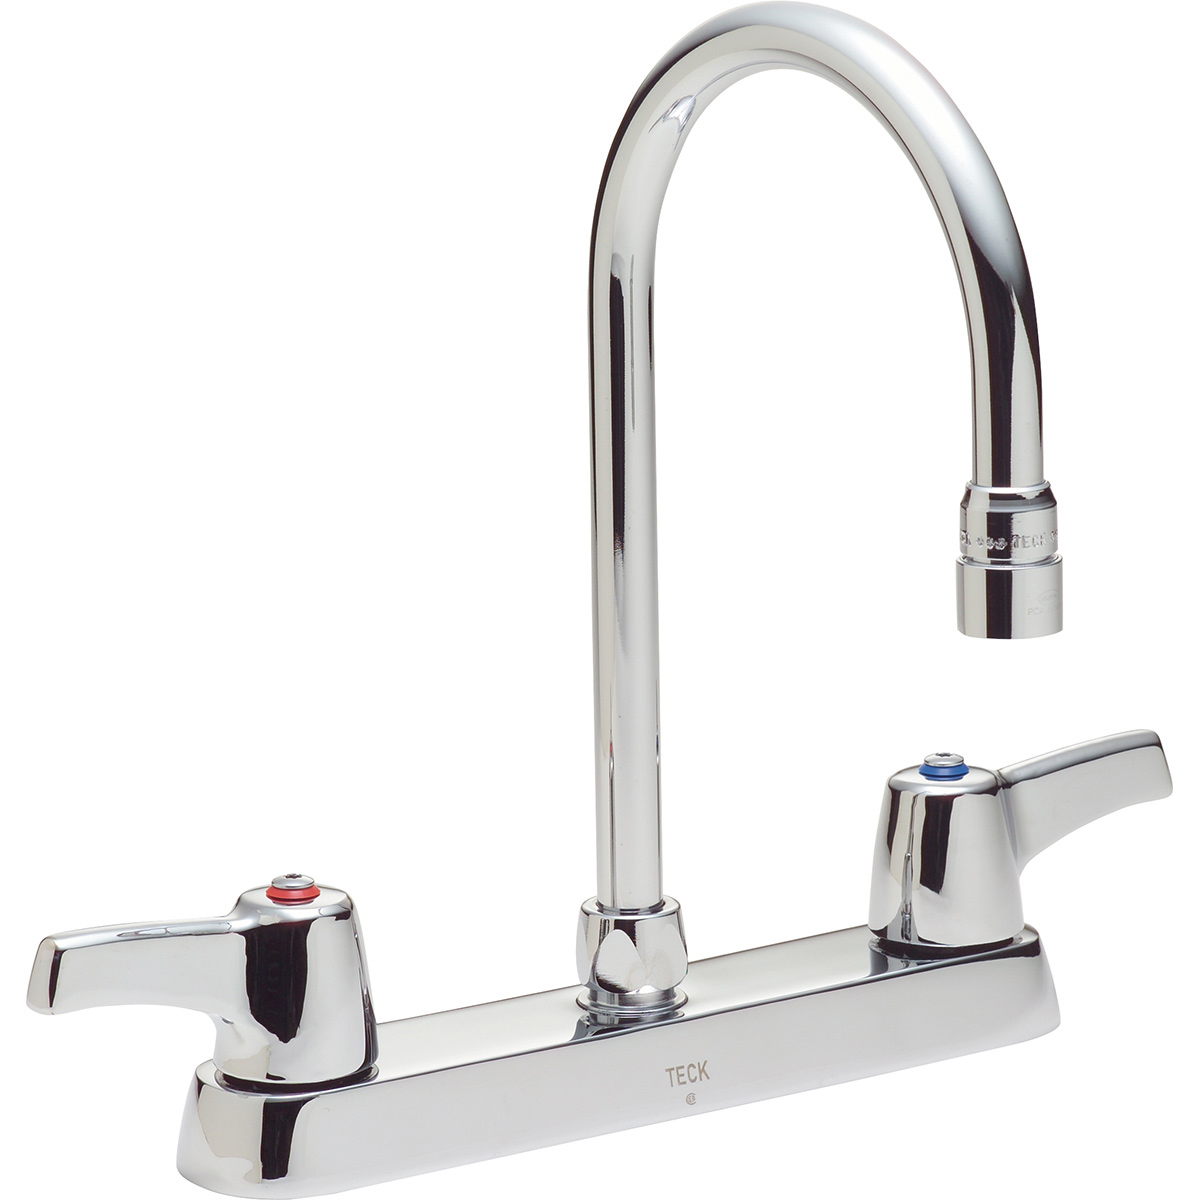 Bath20All - Delta 20t39203 Double Handle 20.20GPM Kitchen Faucet with ... | (title} | 1.5 gpm kitchen faucet